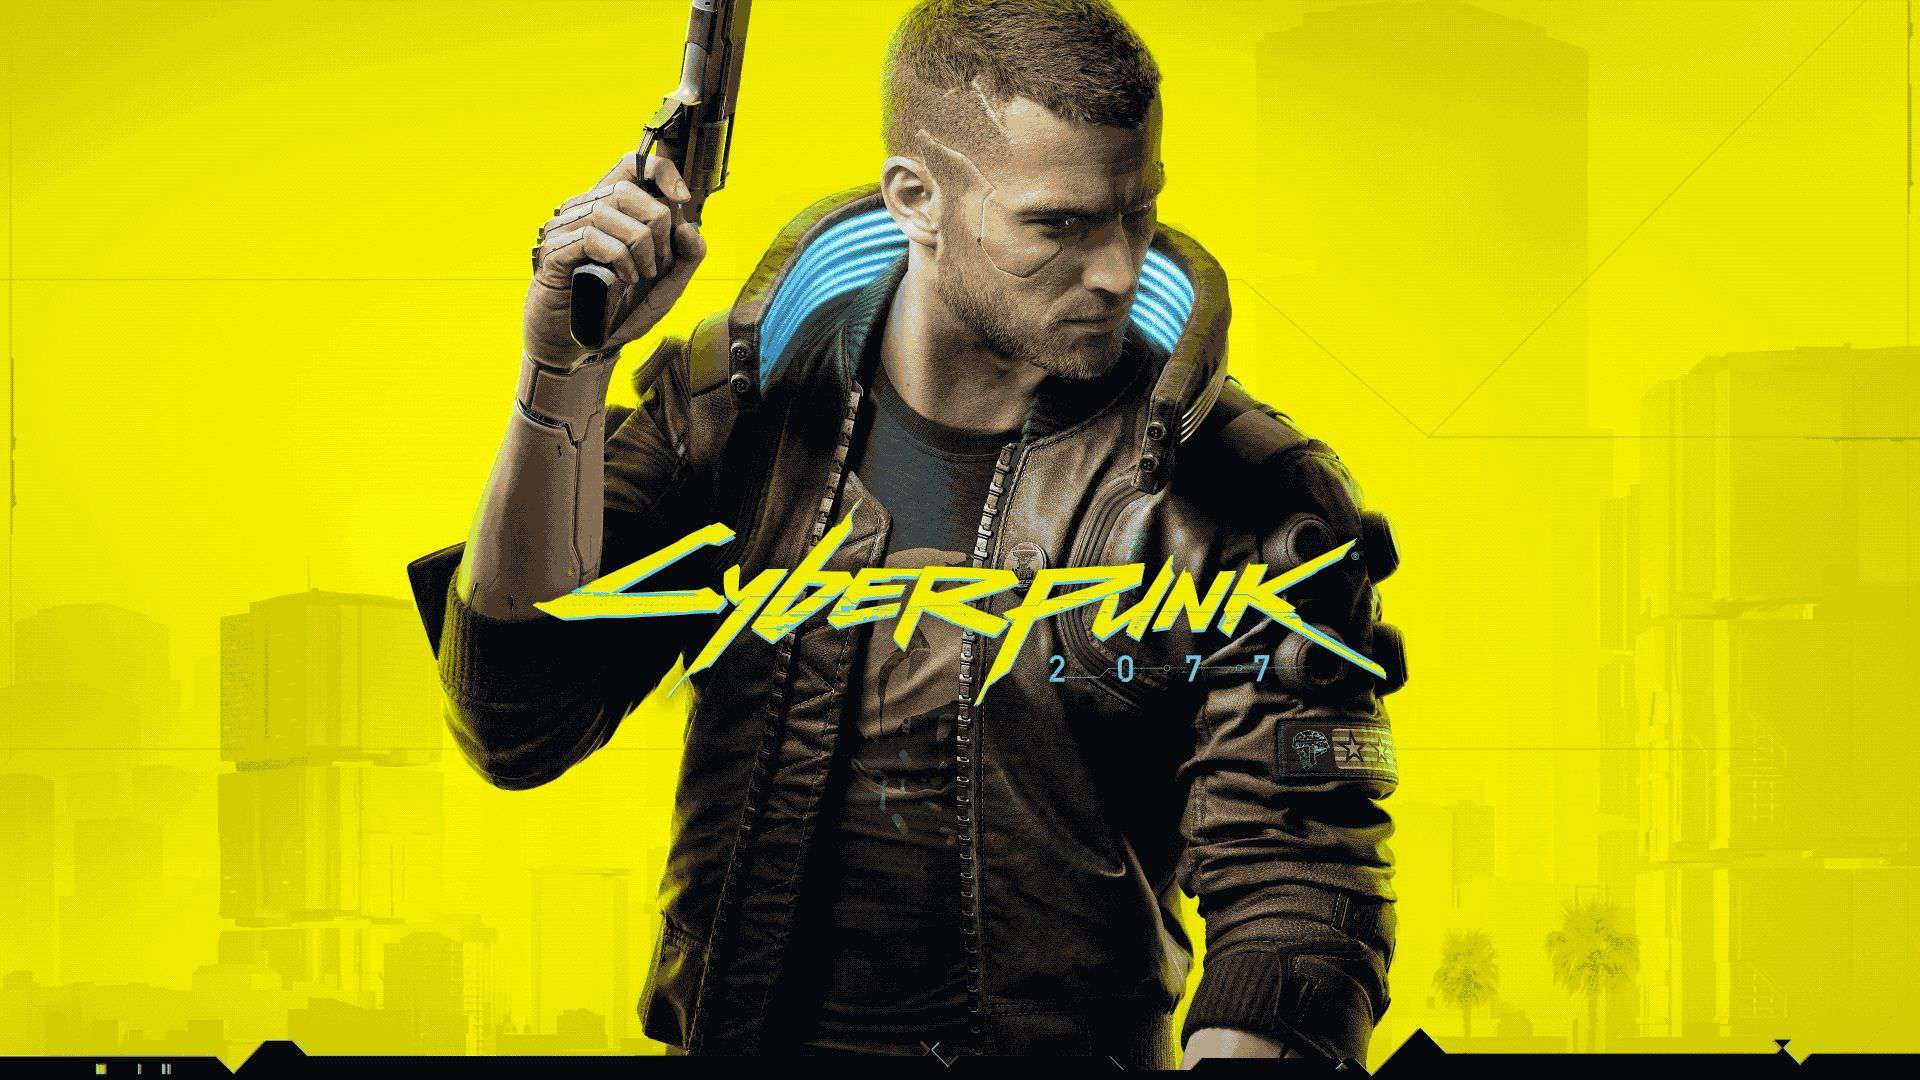 Cyberpunk 2077 PlayStation 4 Pro & Playstation 5 Gameplay Released